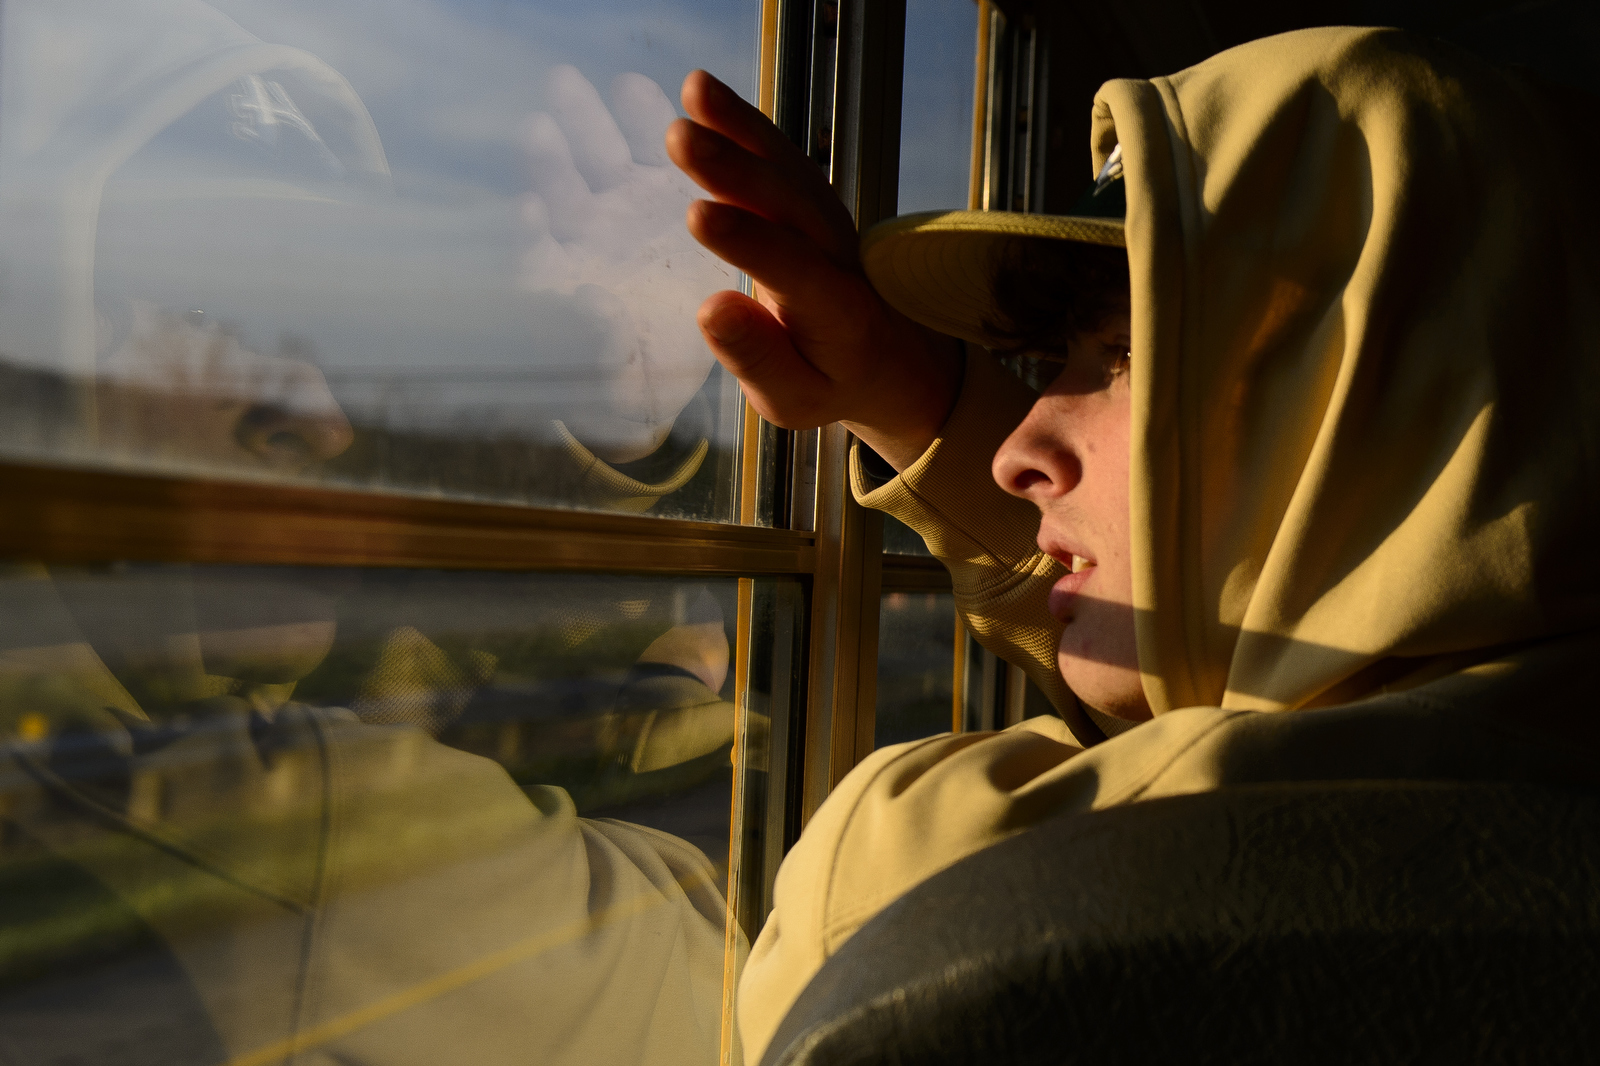 While the bus was passing Ohio University, Greysan Kerns looks out the window at campus and the sunset.